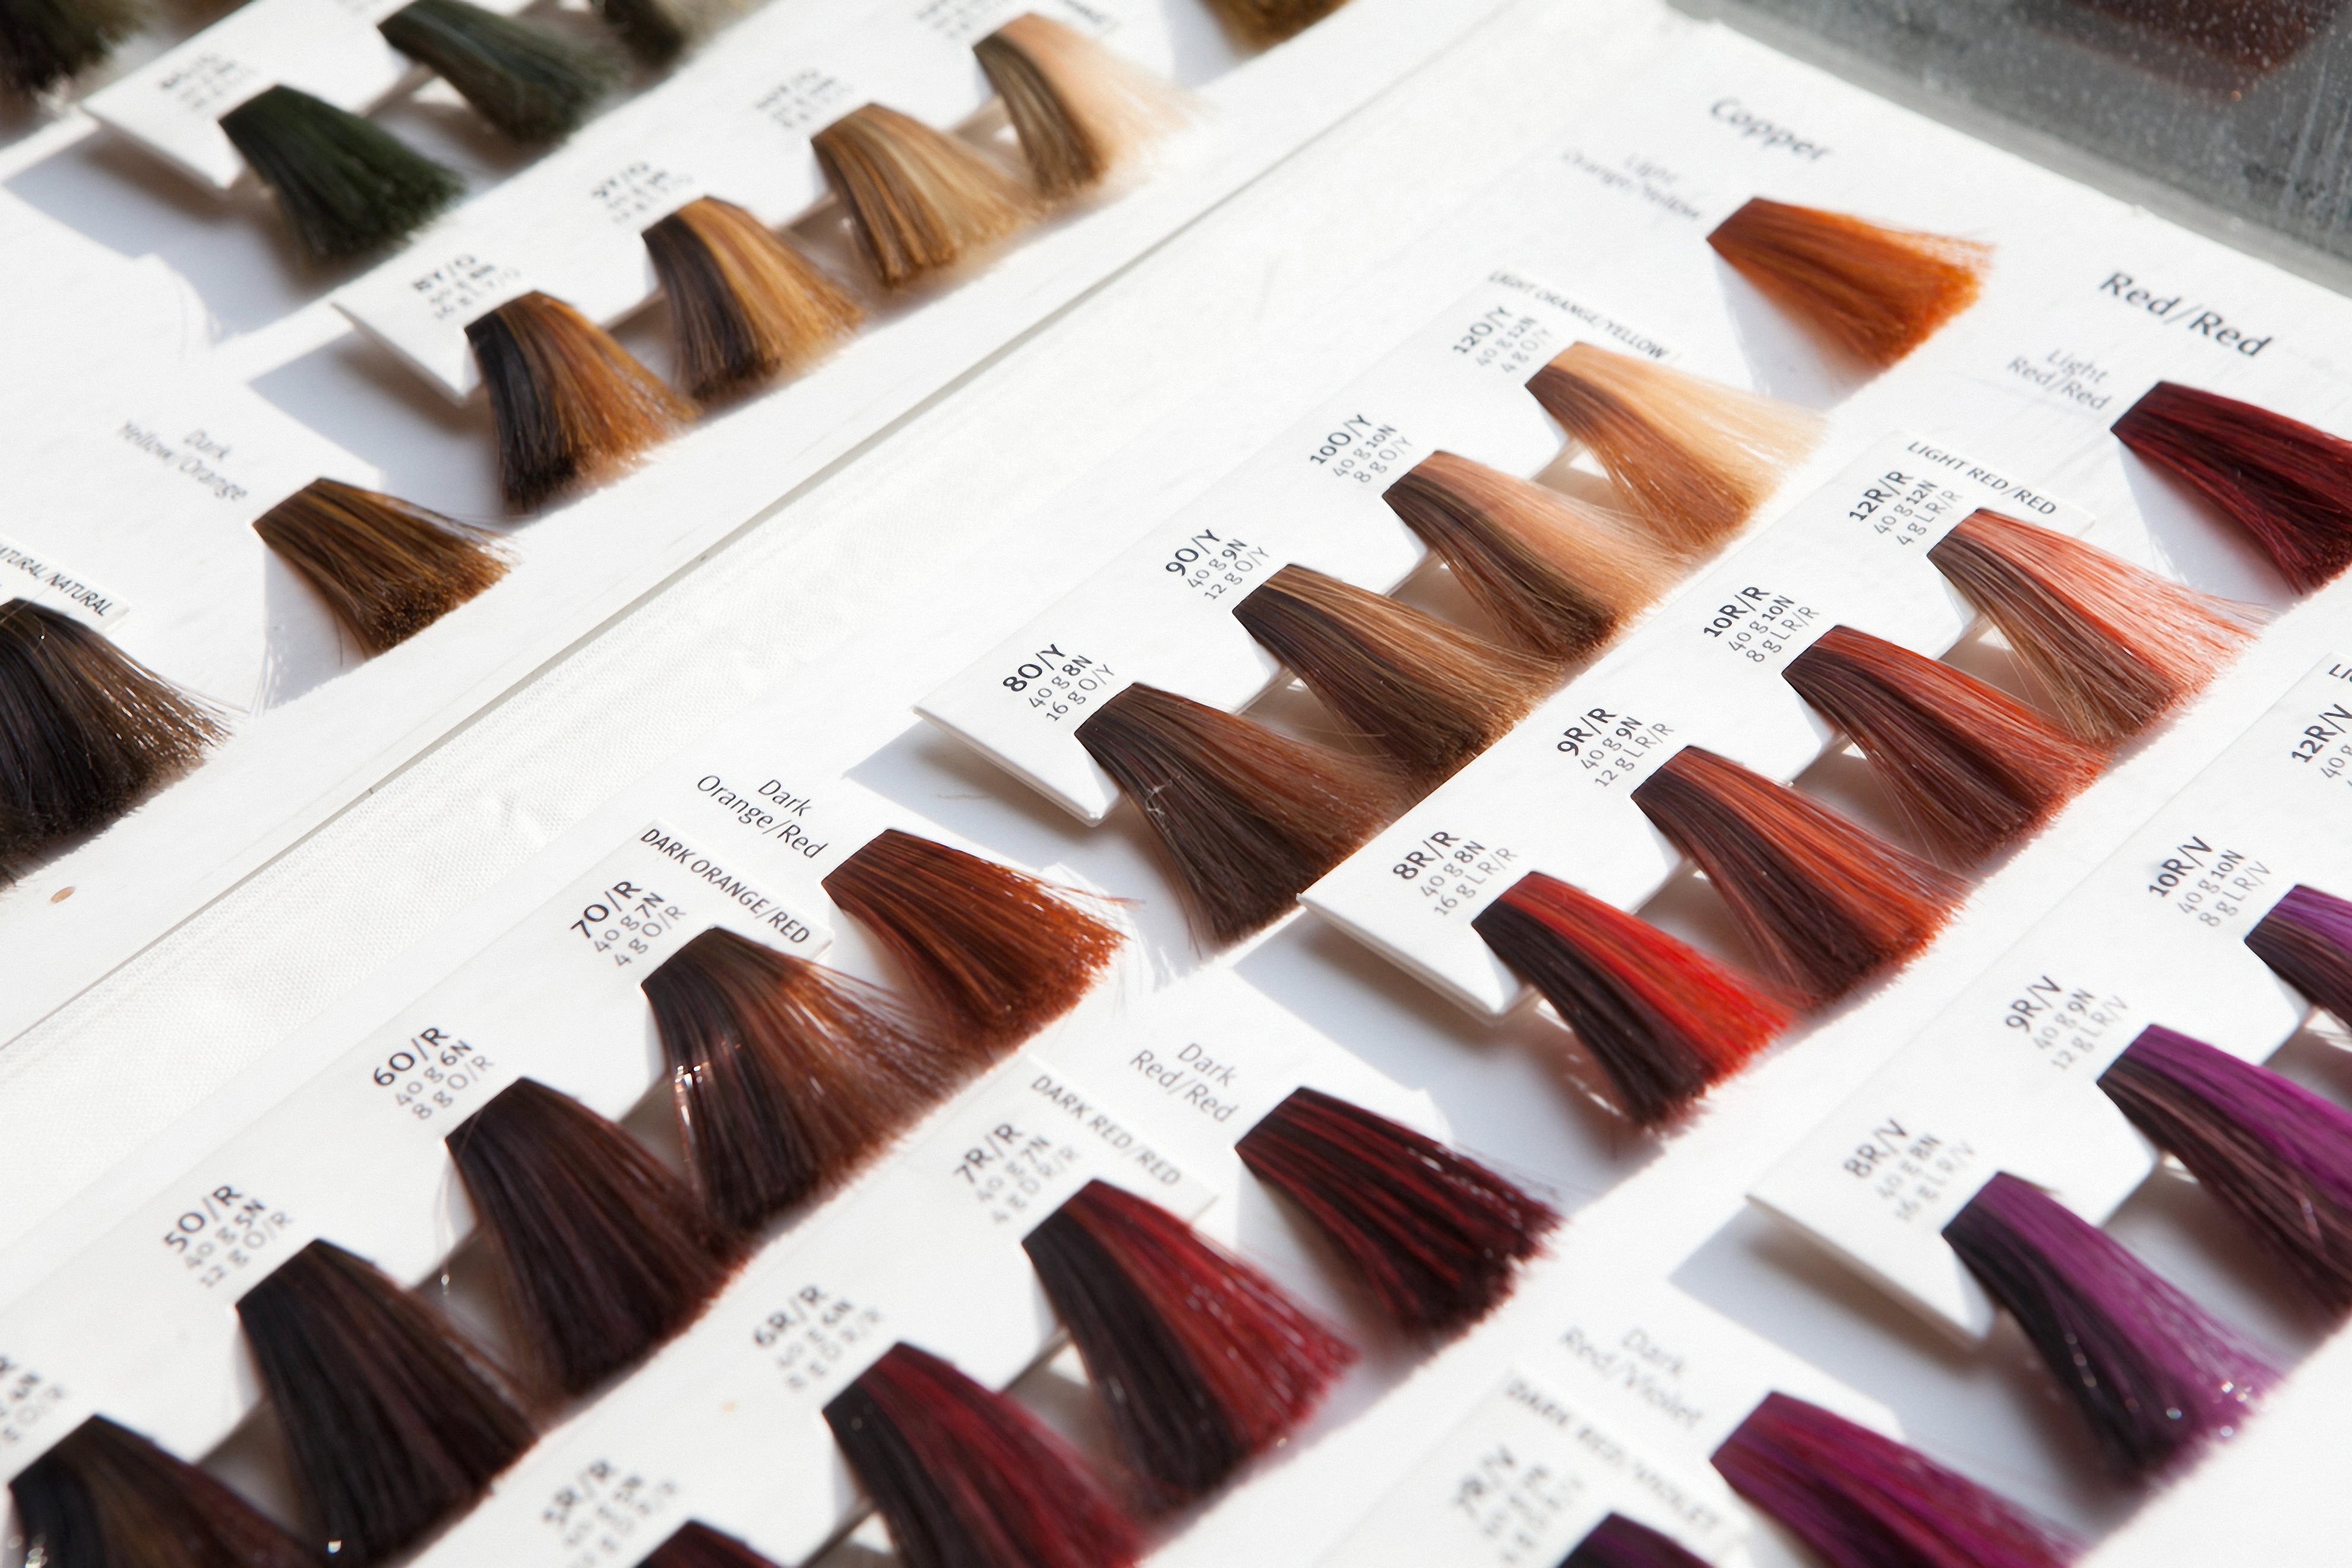 Loreal Hair Color Chart Top 10 Shades For Indian Skin Tones The Urban Guide